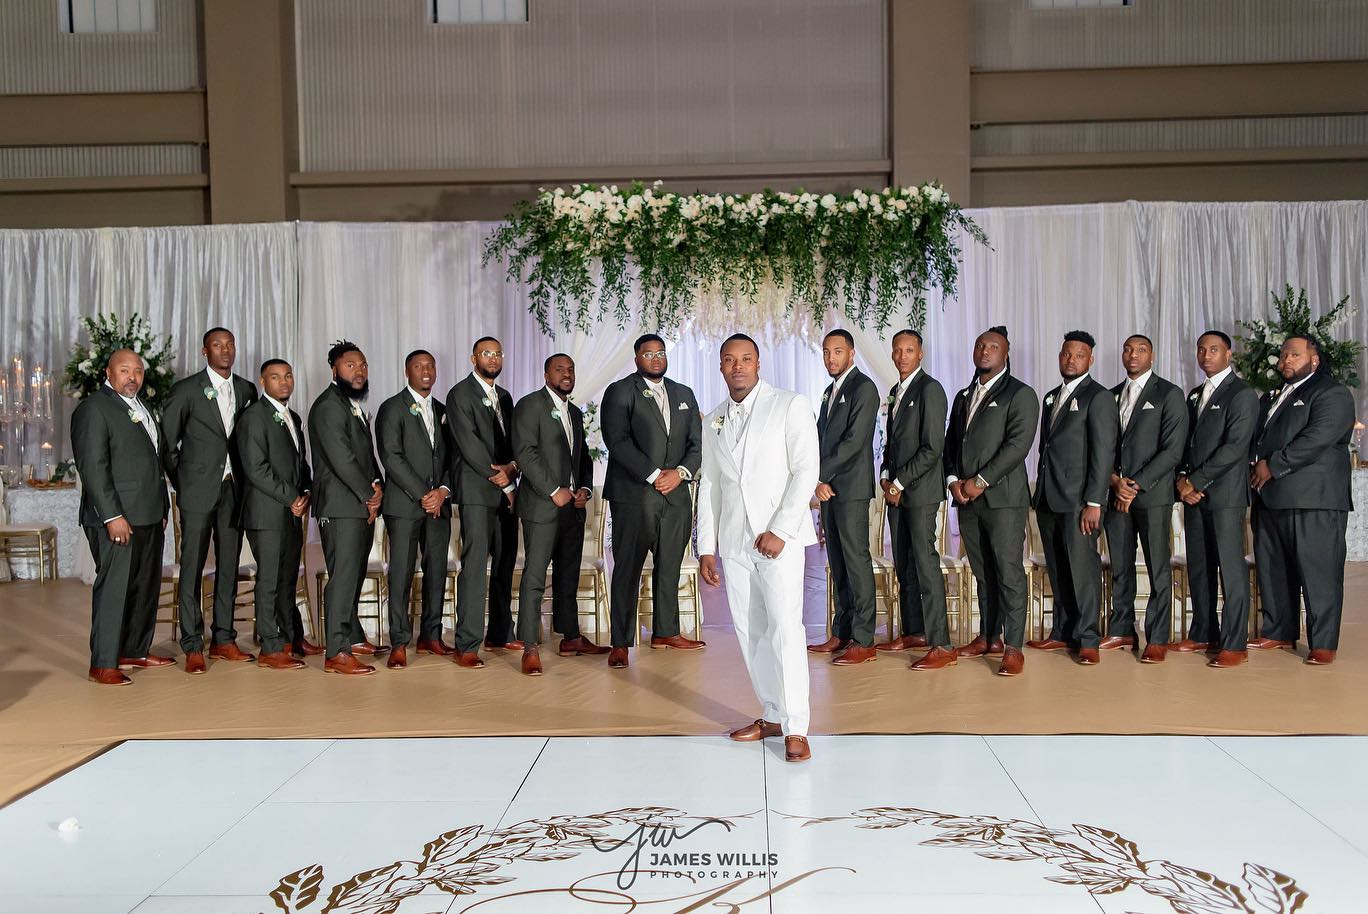 Groom in white tuxedos and groomsment in grey tuxedos from Tuxedos to Geaux